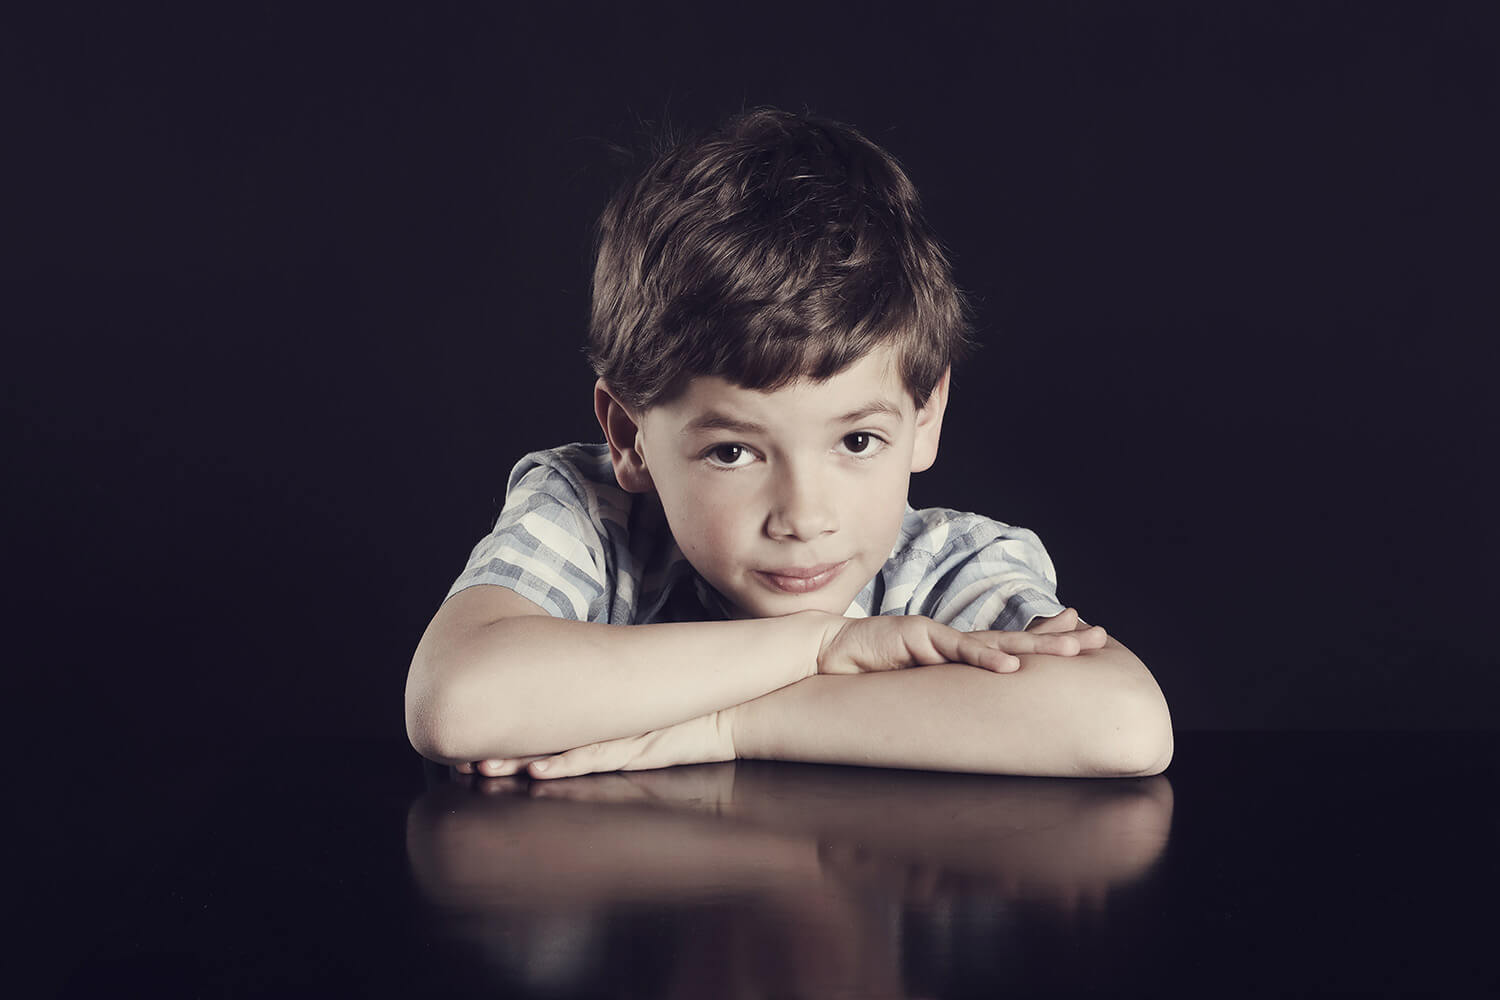 Family photo of a boy with his arms folded under his chin on a dark background